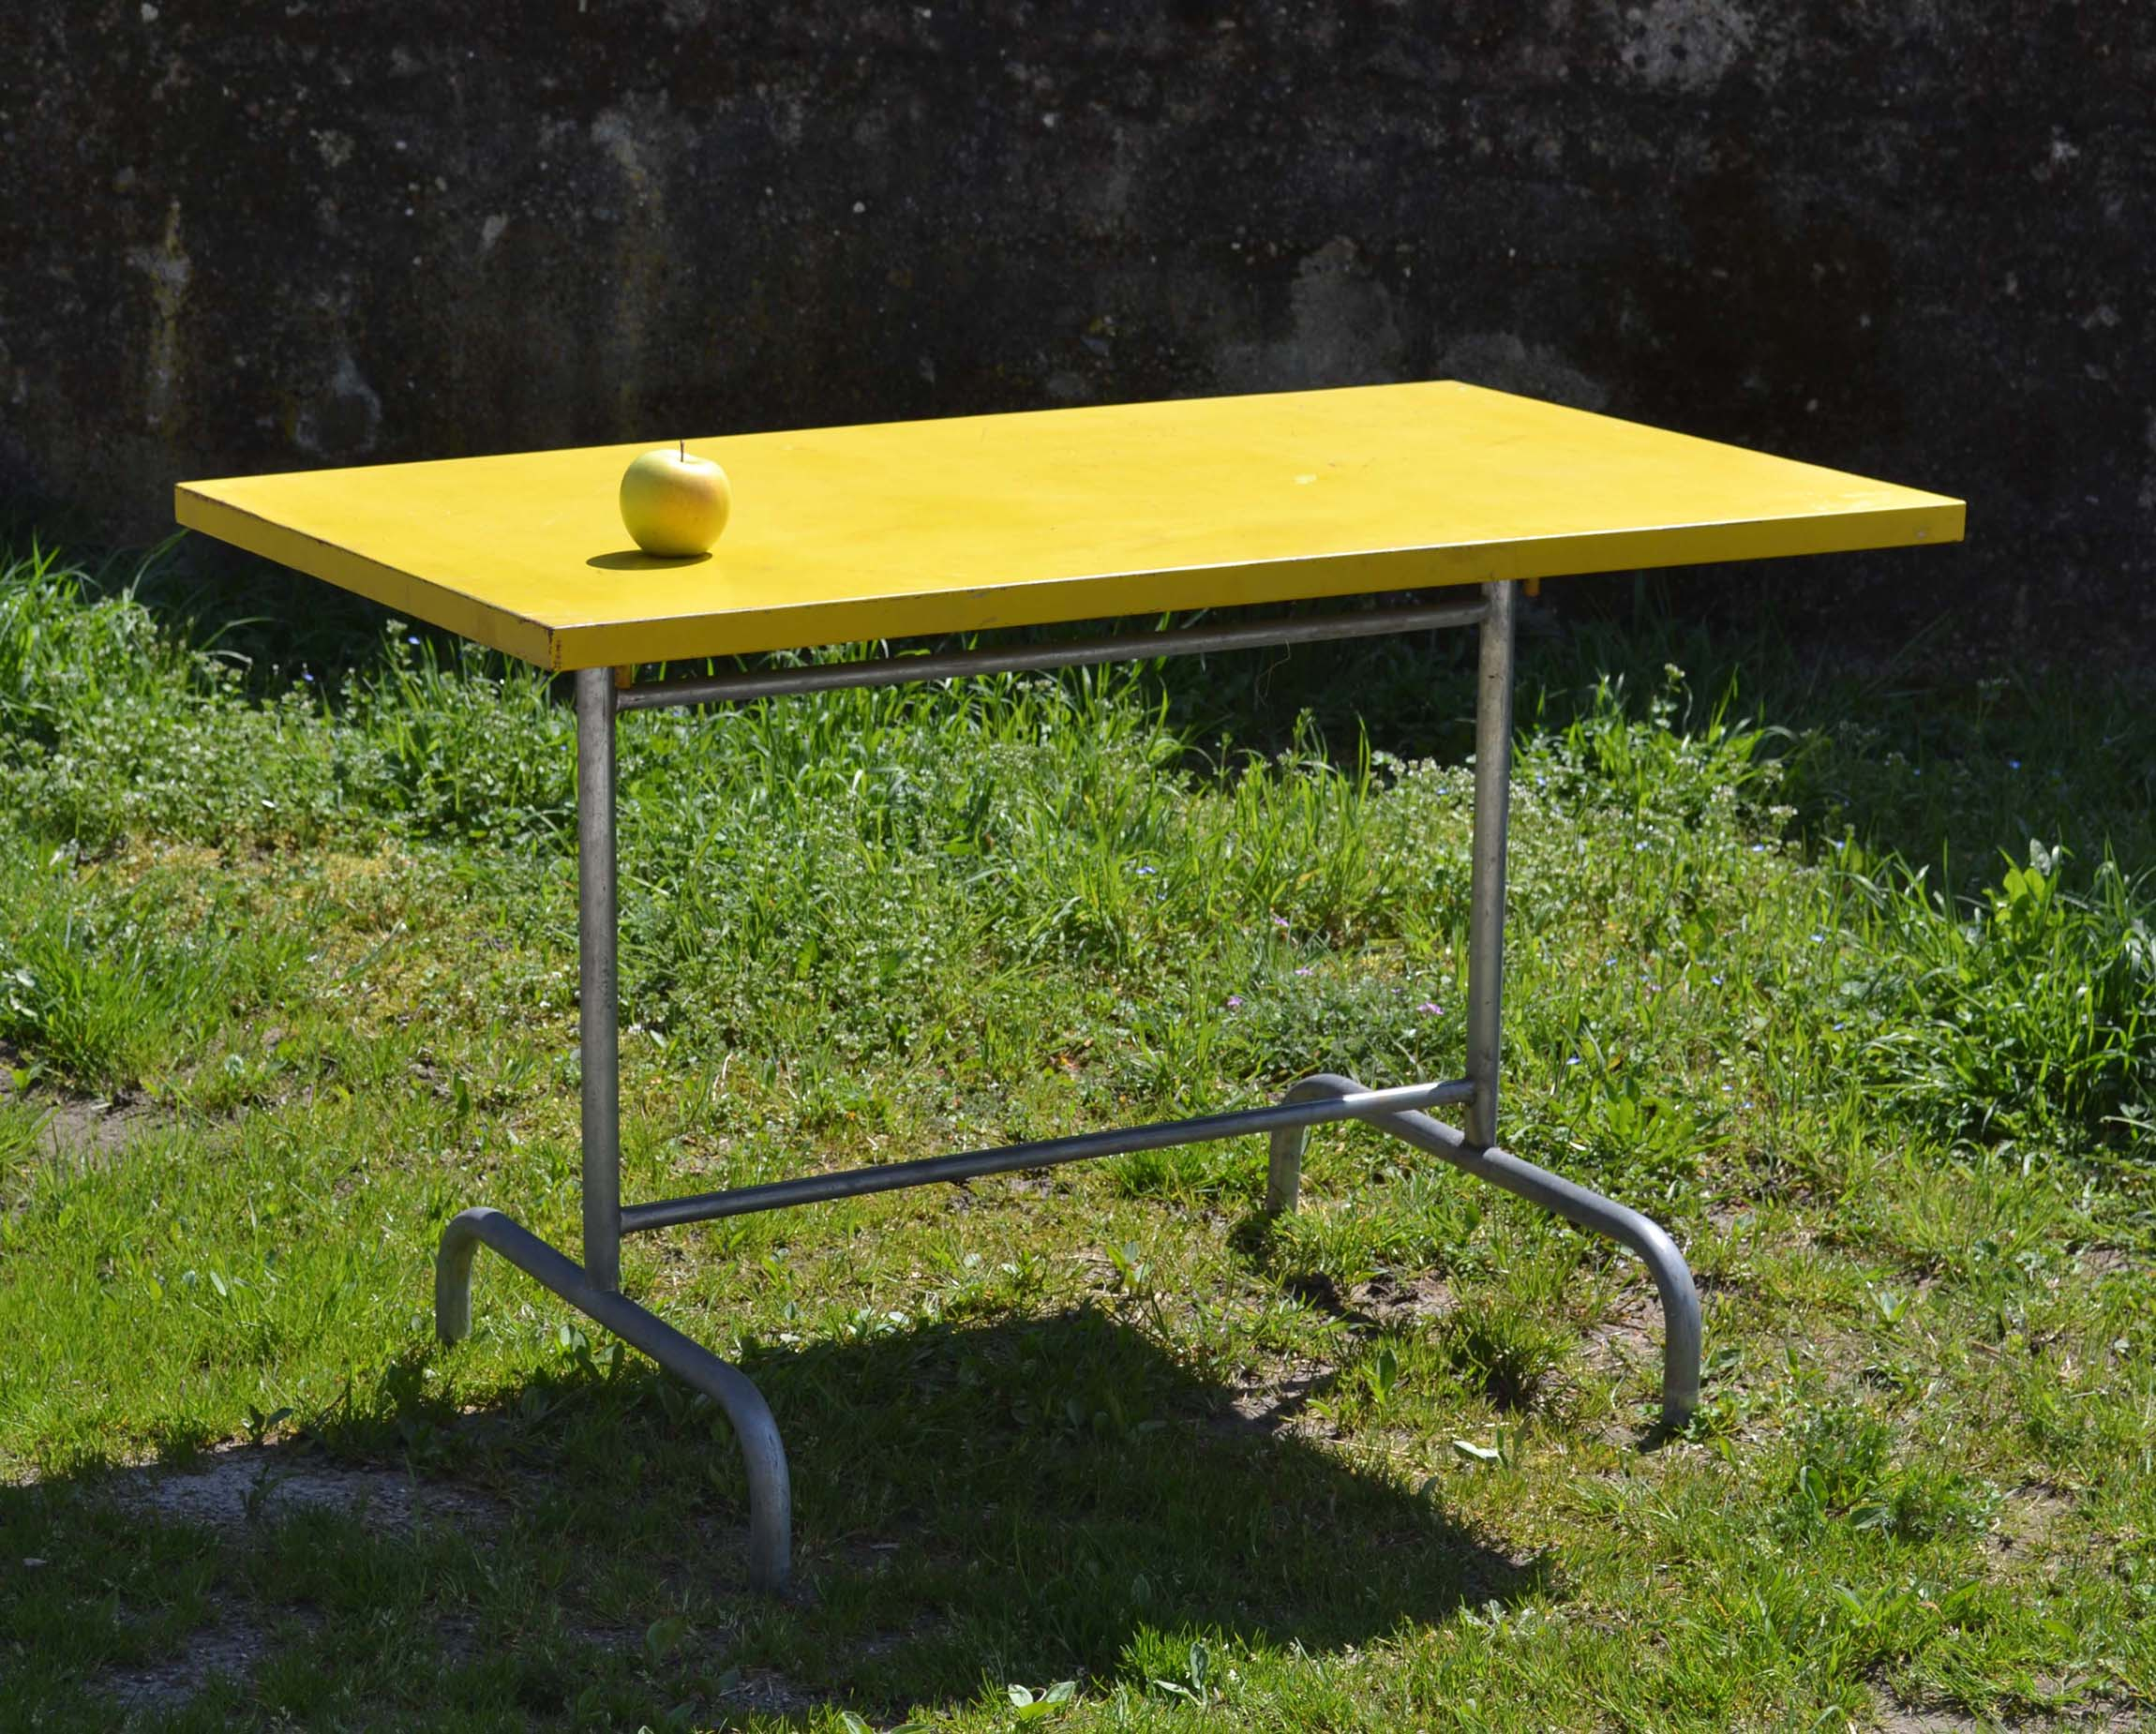 Embru bigla mobilier d 39 ext rieur tubulaire vintage suisse for Table exterieur suisse